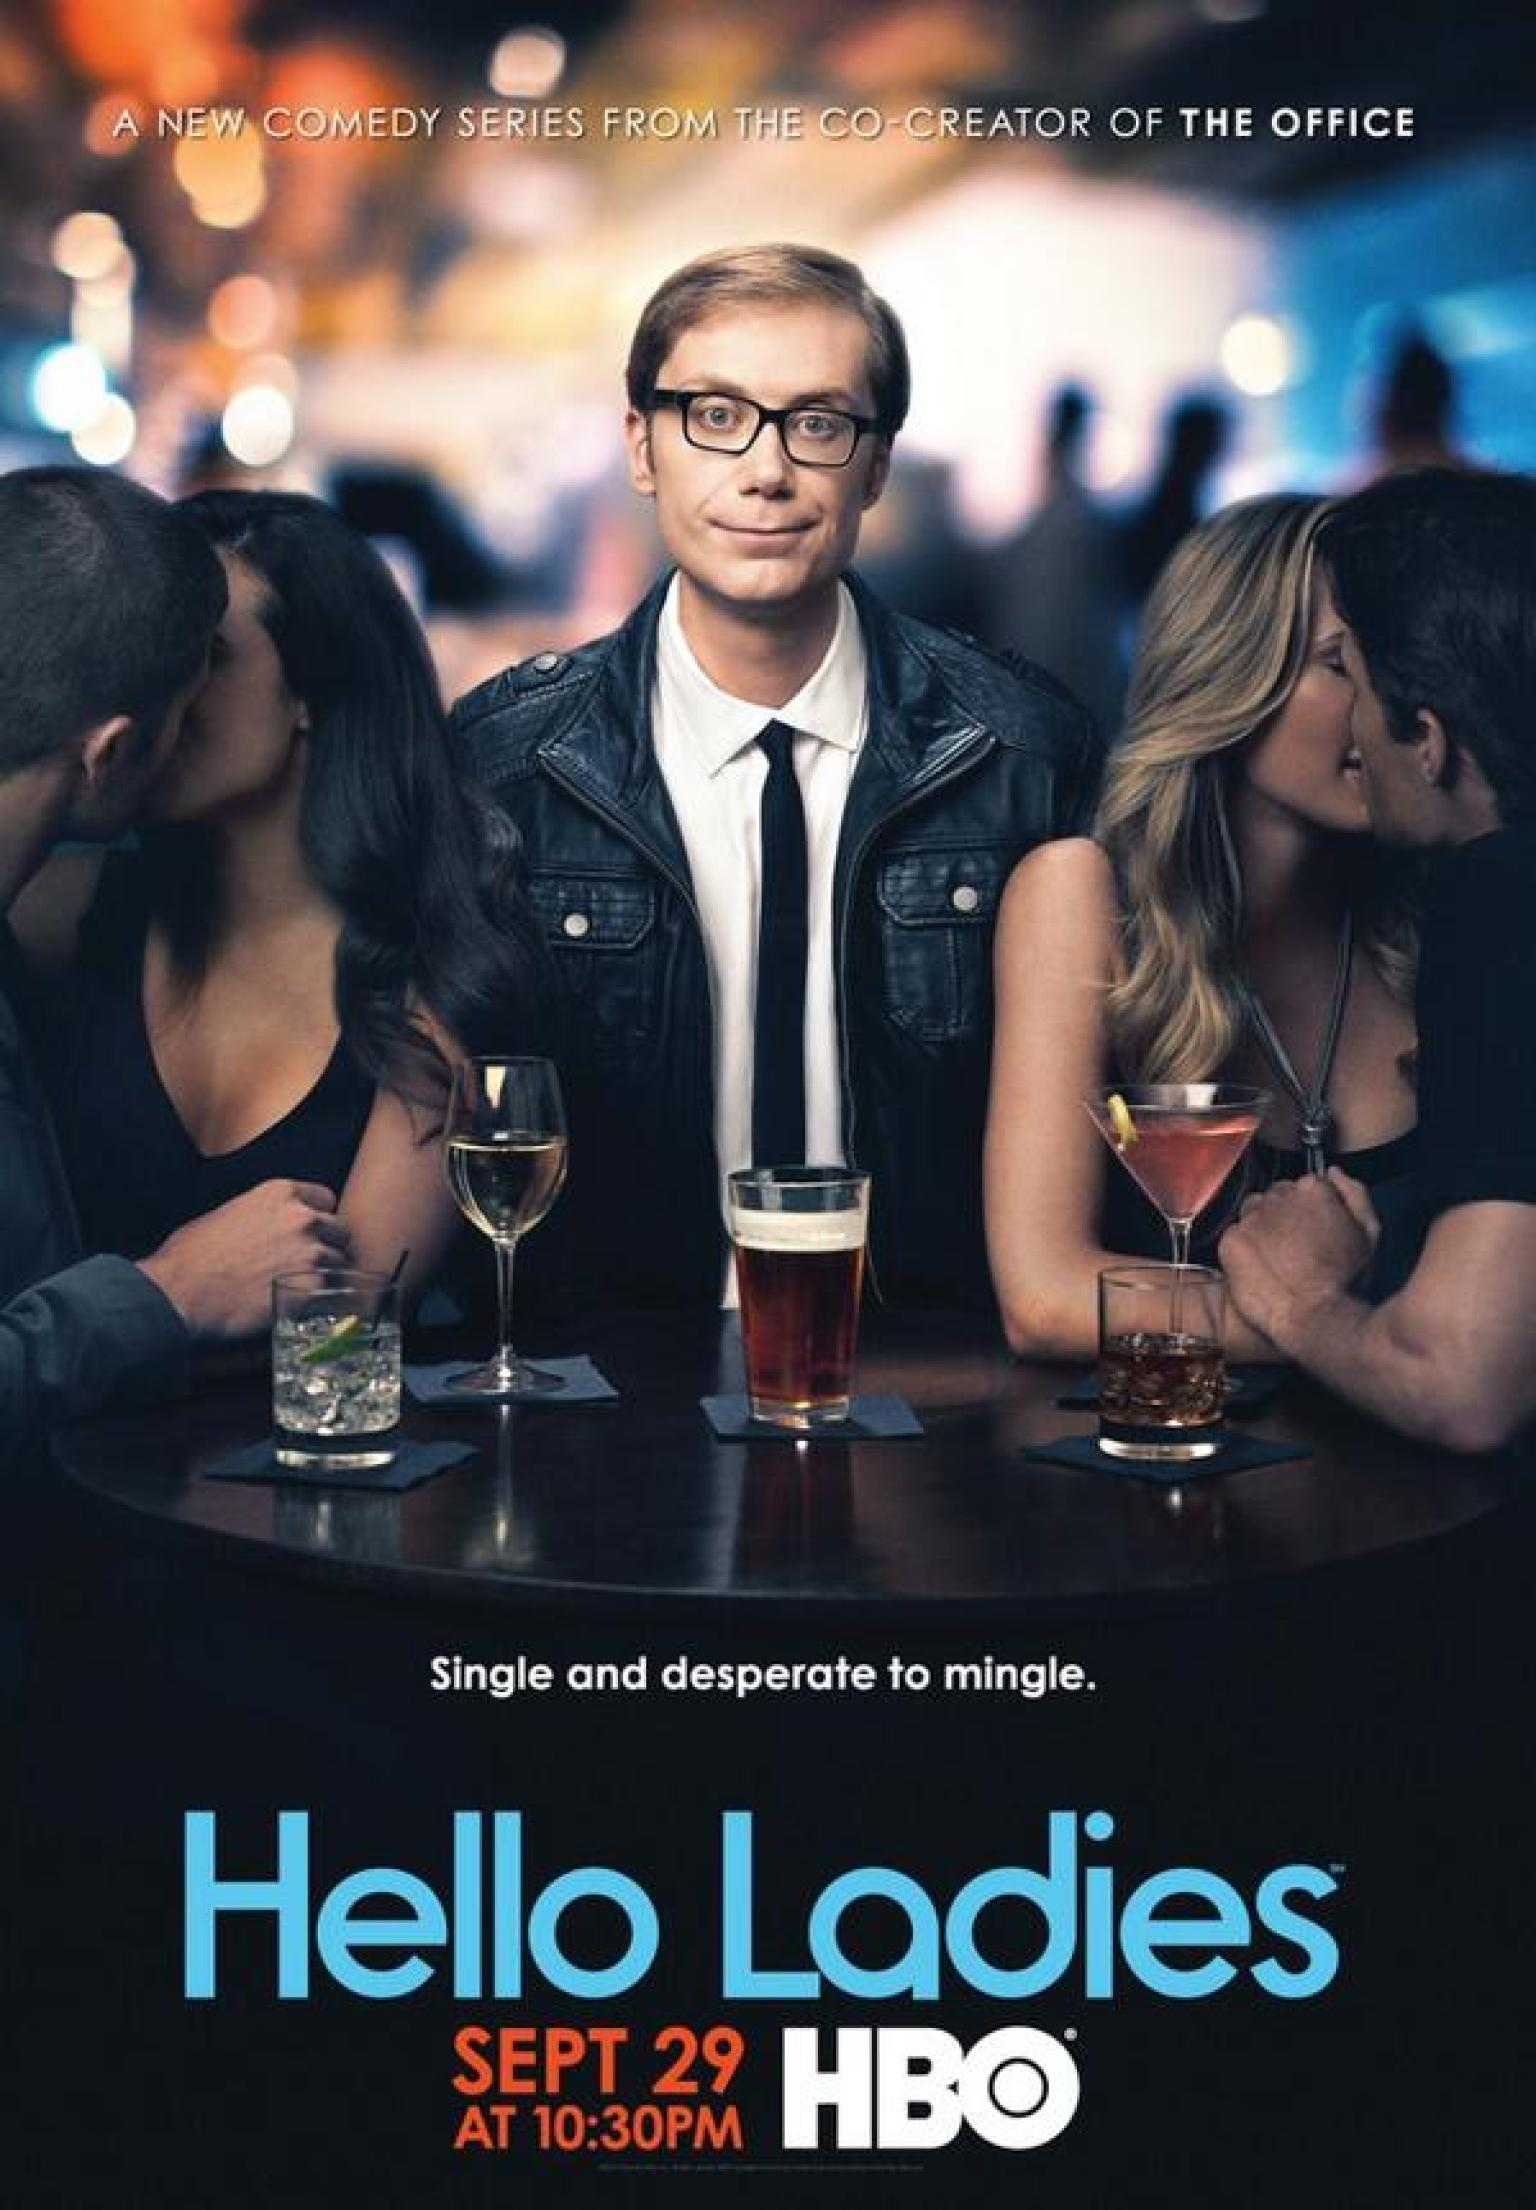 hello ladies stephen merchant shares new poster from